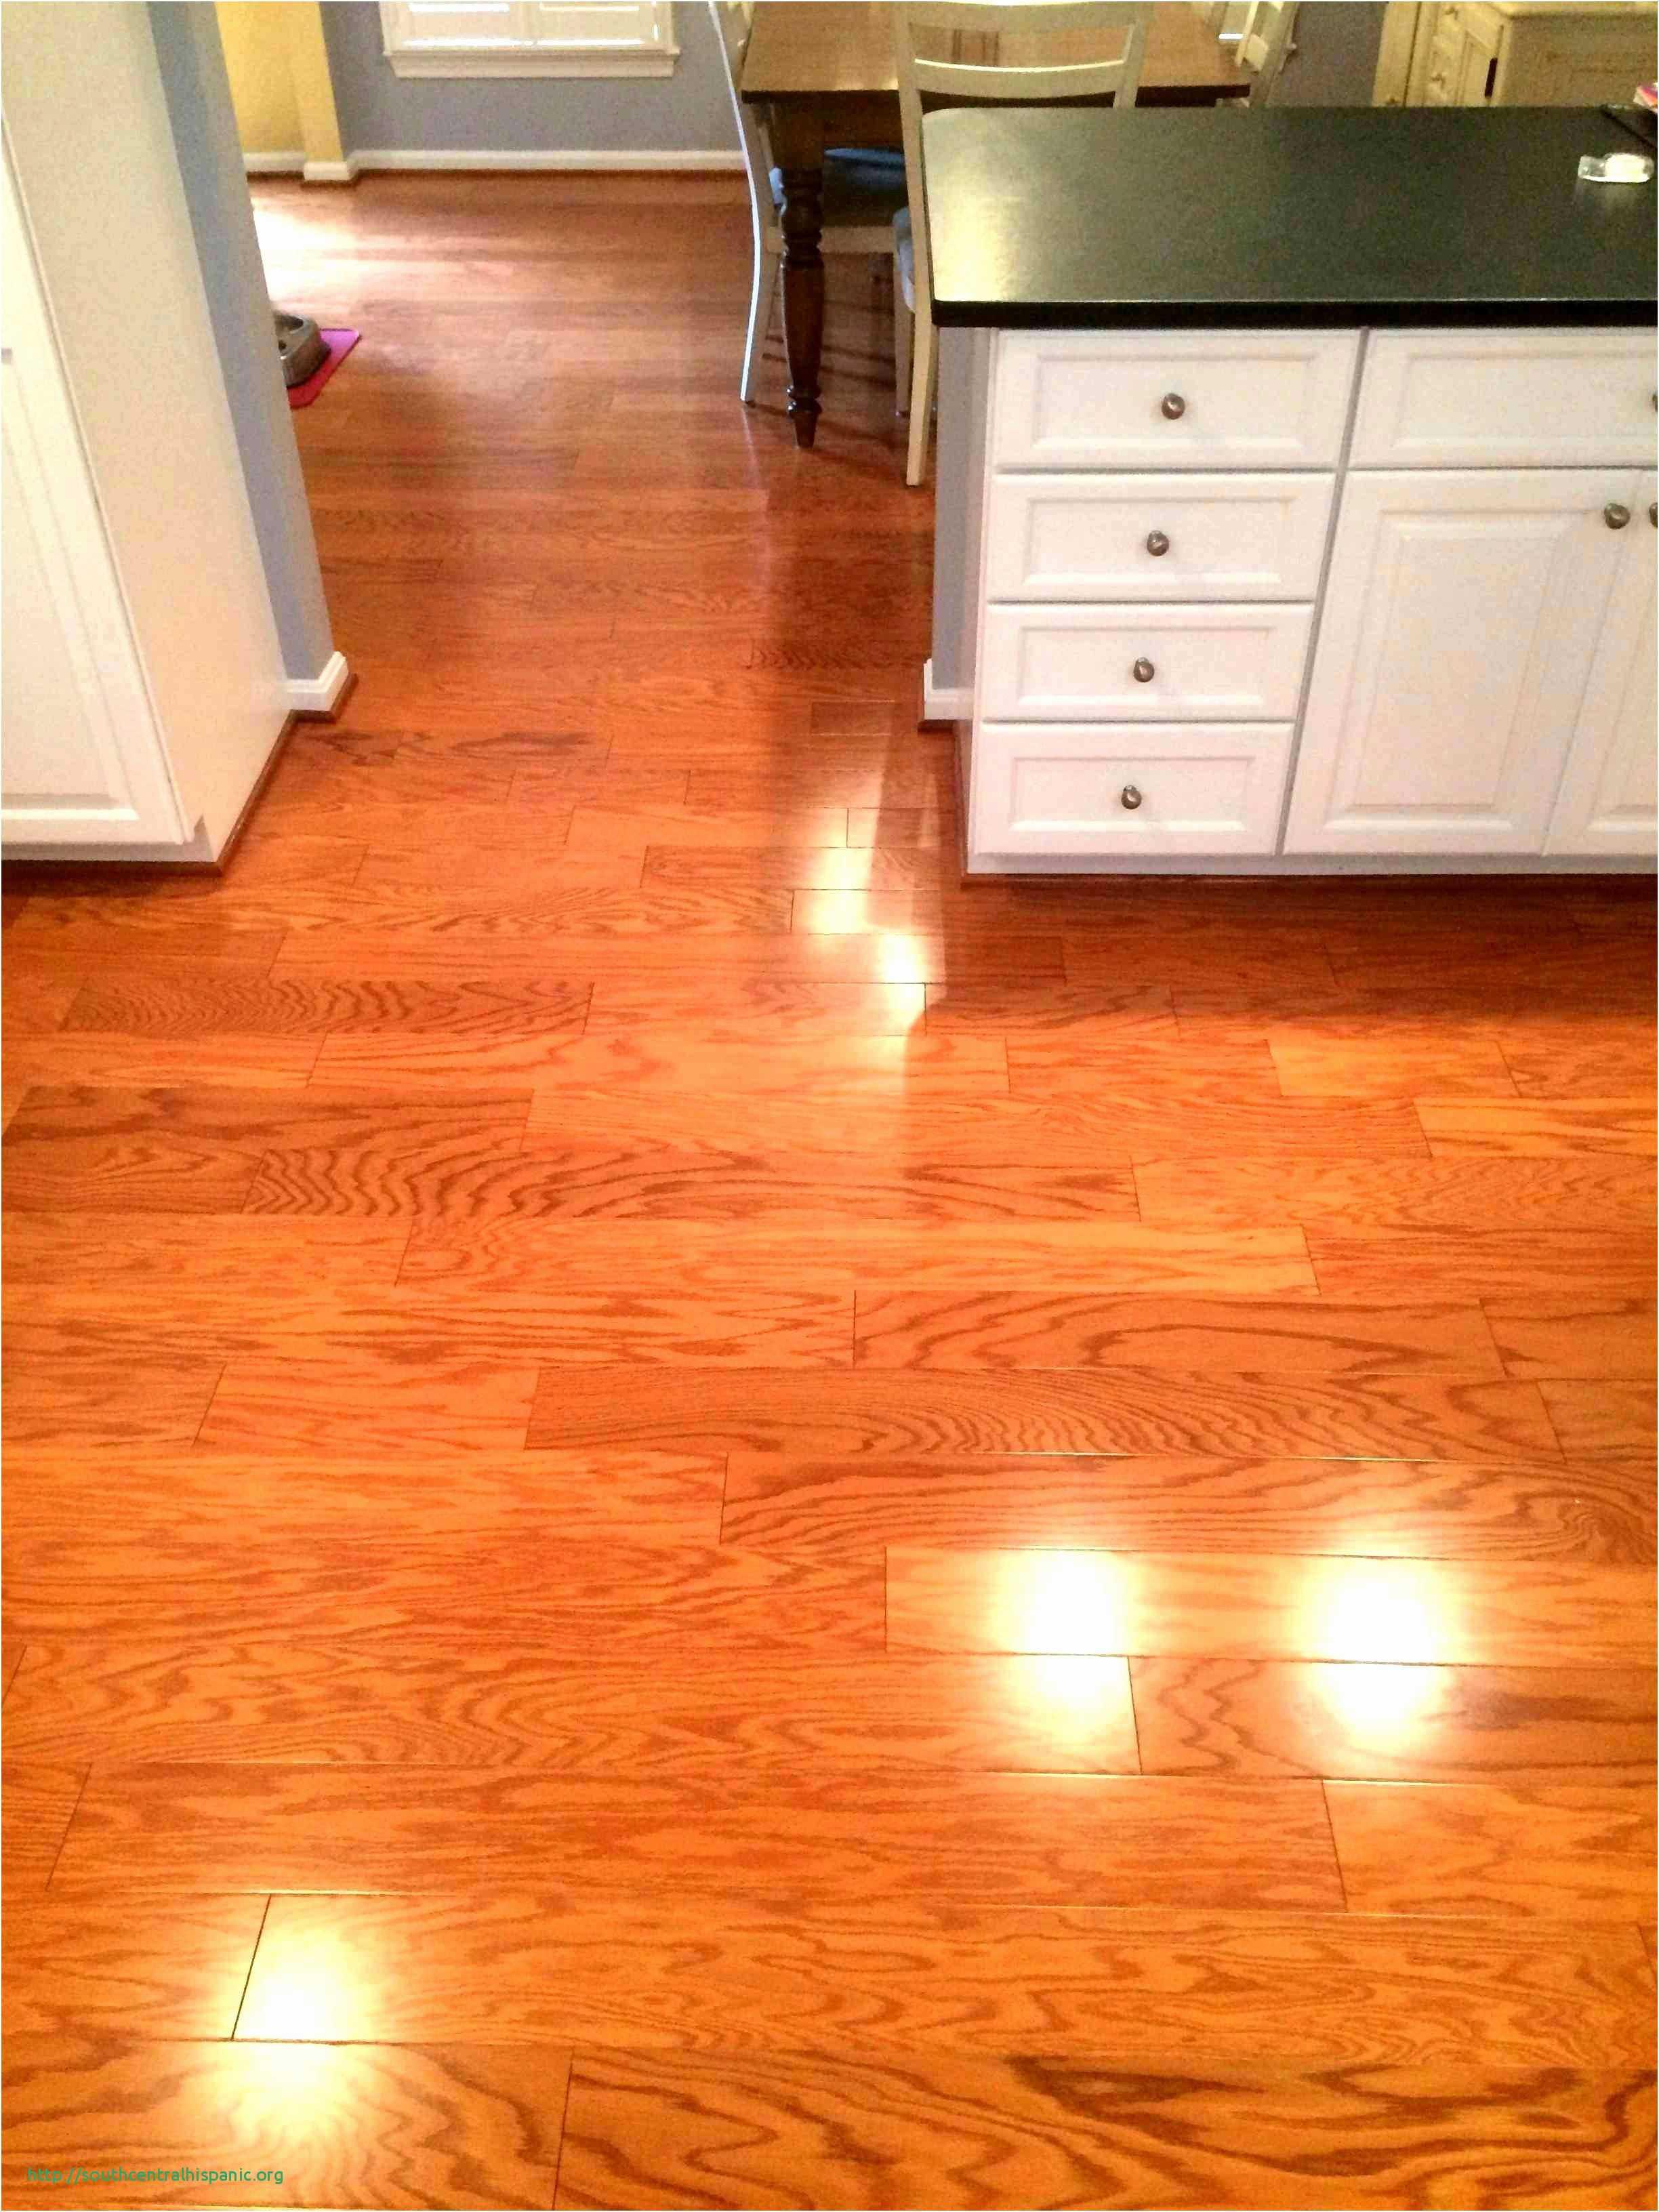 hardwood floor sanding ct of dahuacctvth com page 6 of 72 flooring decoration ideas page 6 with regard to hardwood floor refinishing nj